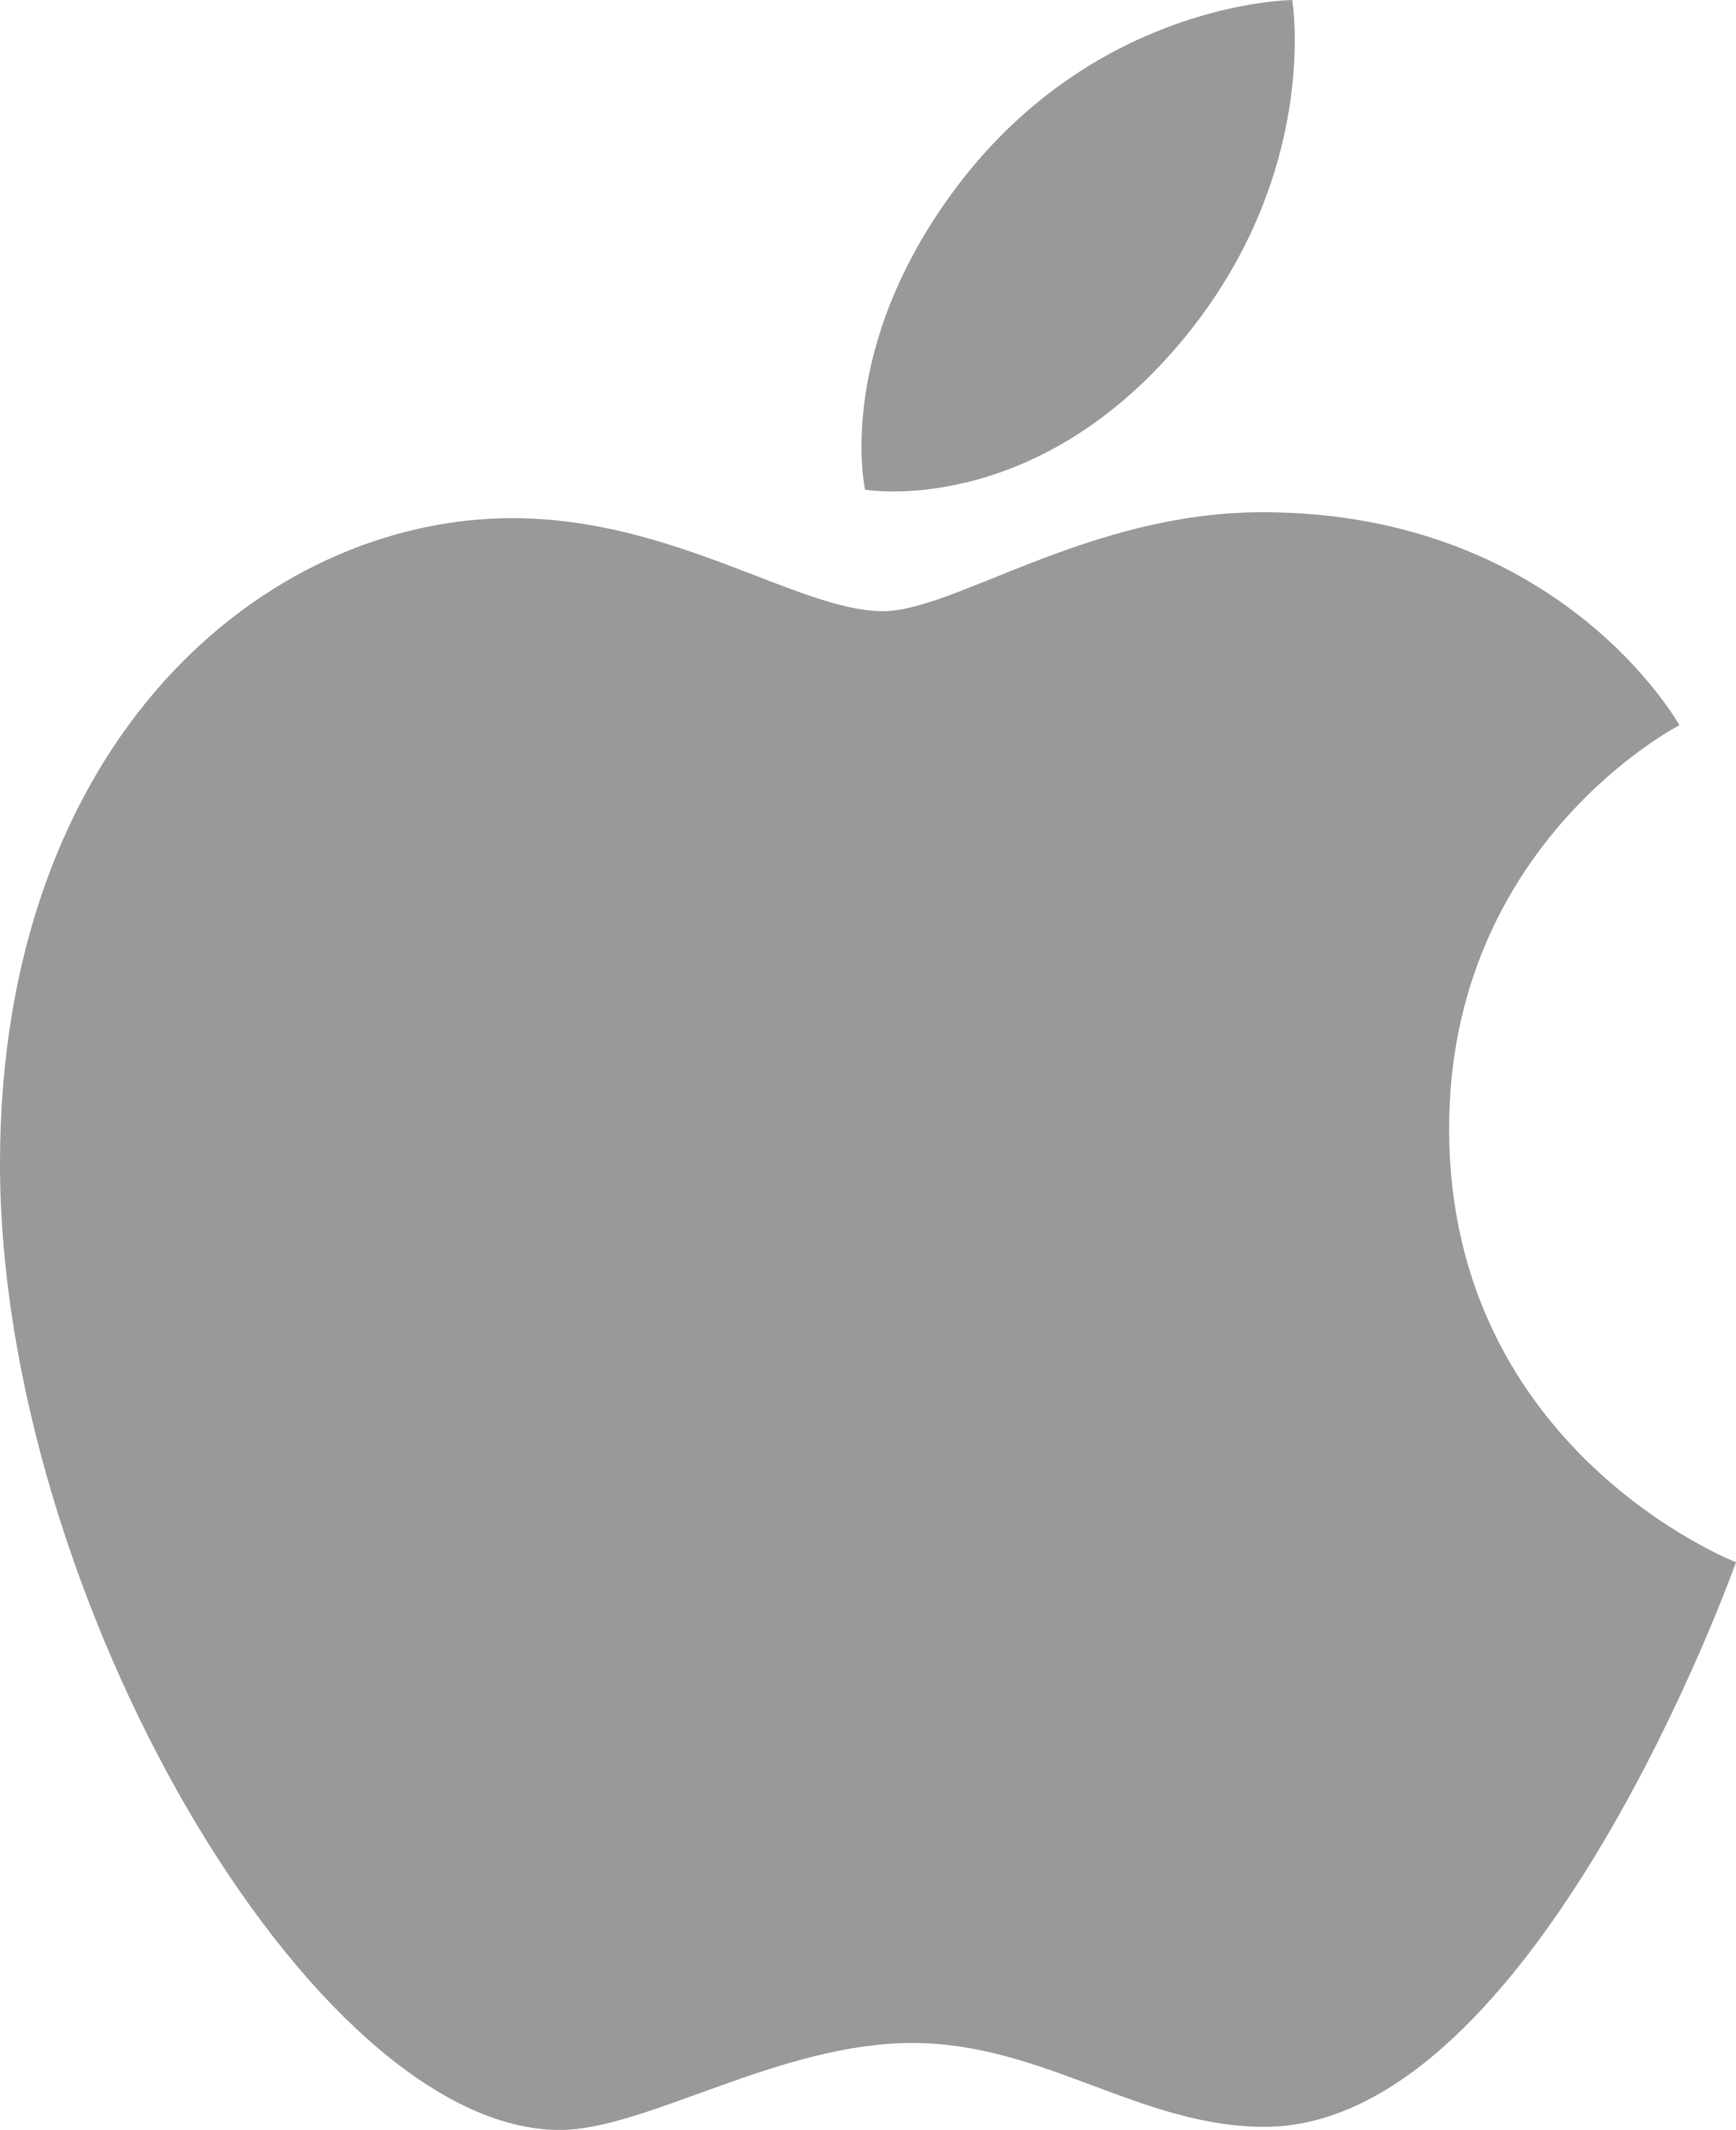 Logo Apple PNG HD Images Free Download.